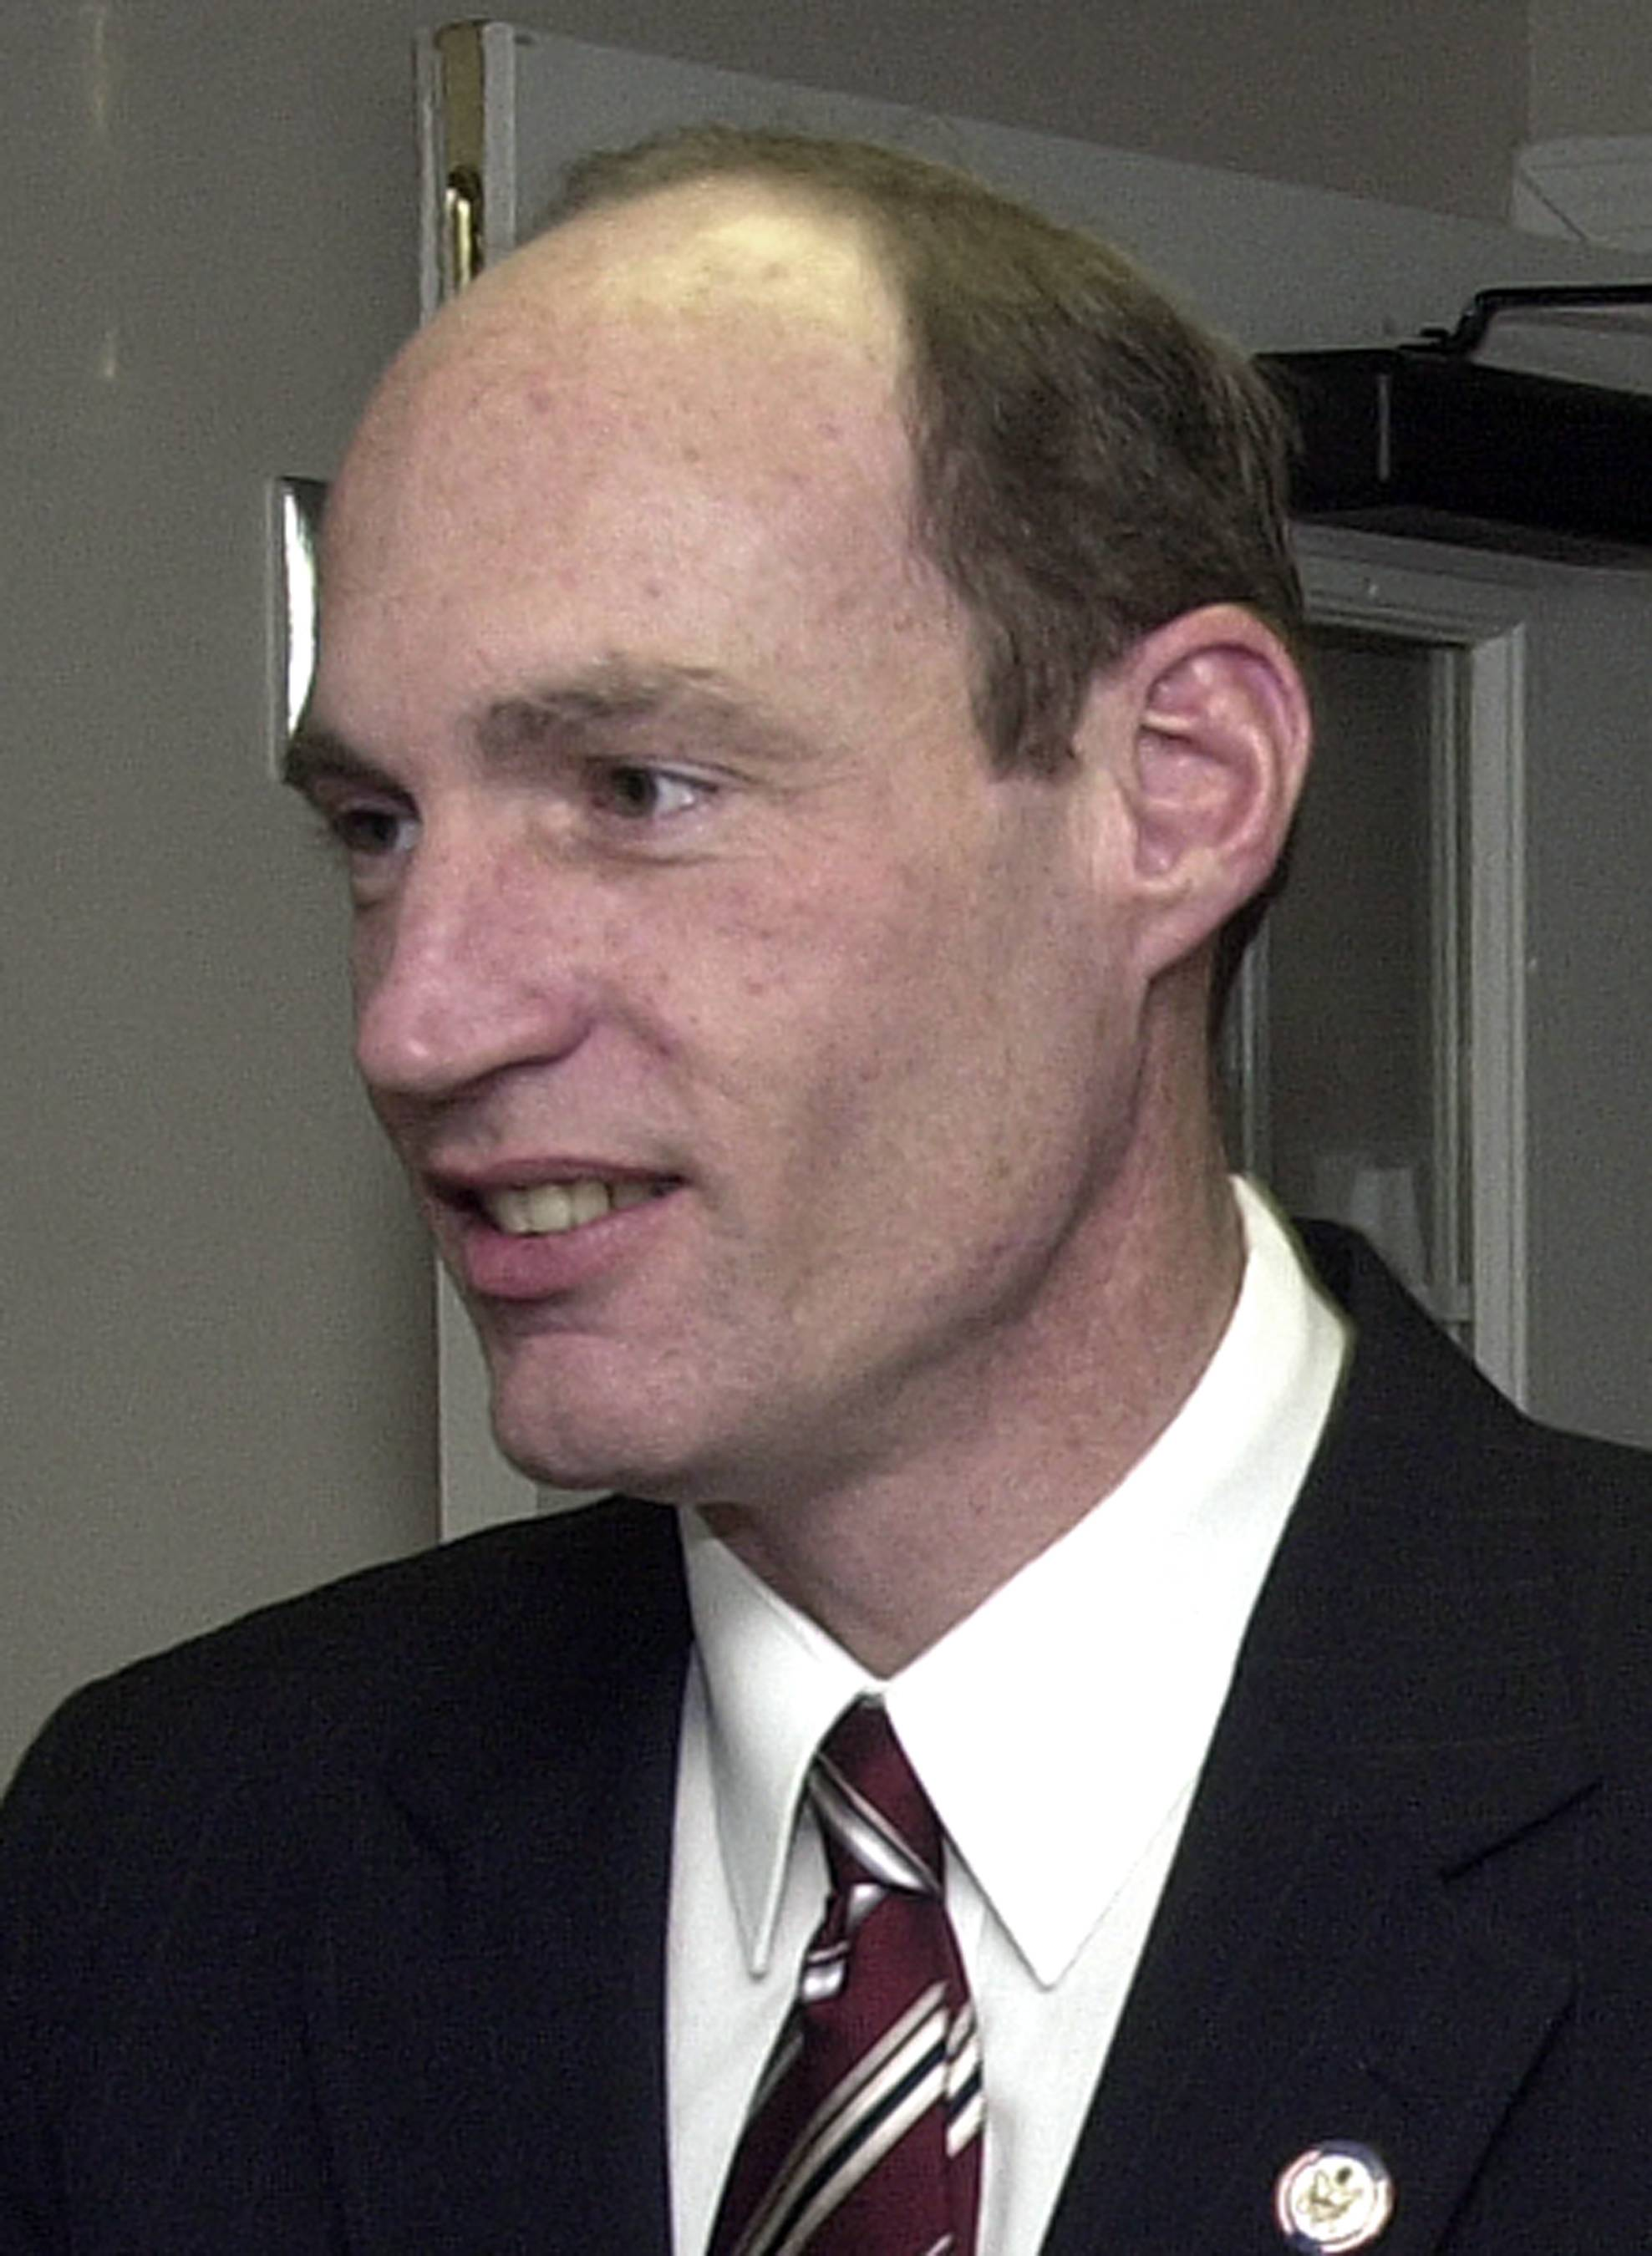 Rep. Thaddeus McCotter, a Michigan Republican, confirmed Friday on WJR-AM he'll make a formal announcement about his candidacy on Saturday. The 45-year-old McCotter is a lawyer and served as a state senator, Wayne County commissioner and Schoolcraft Community College trustee before entering the U.S. House in 2003.